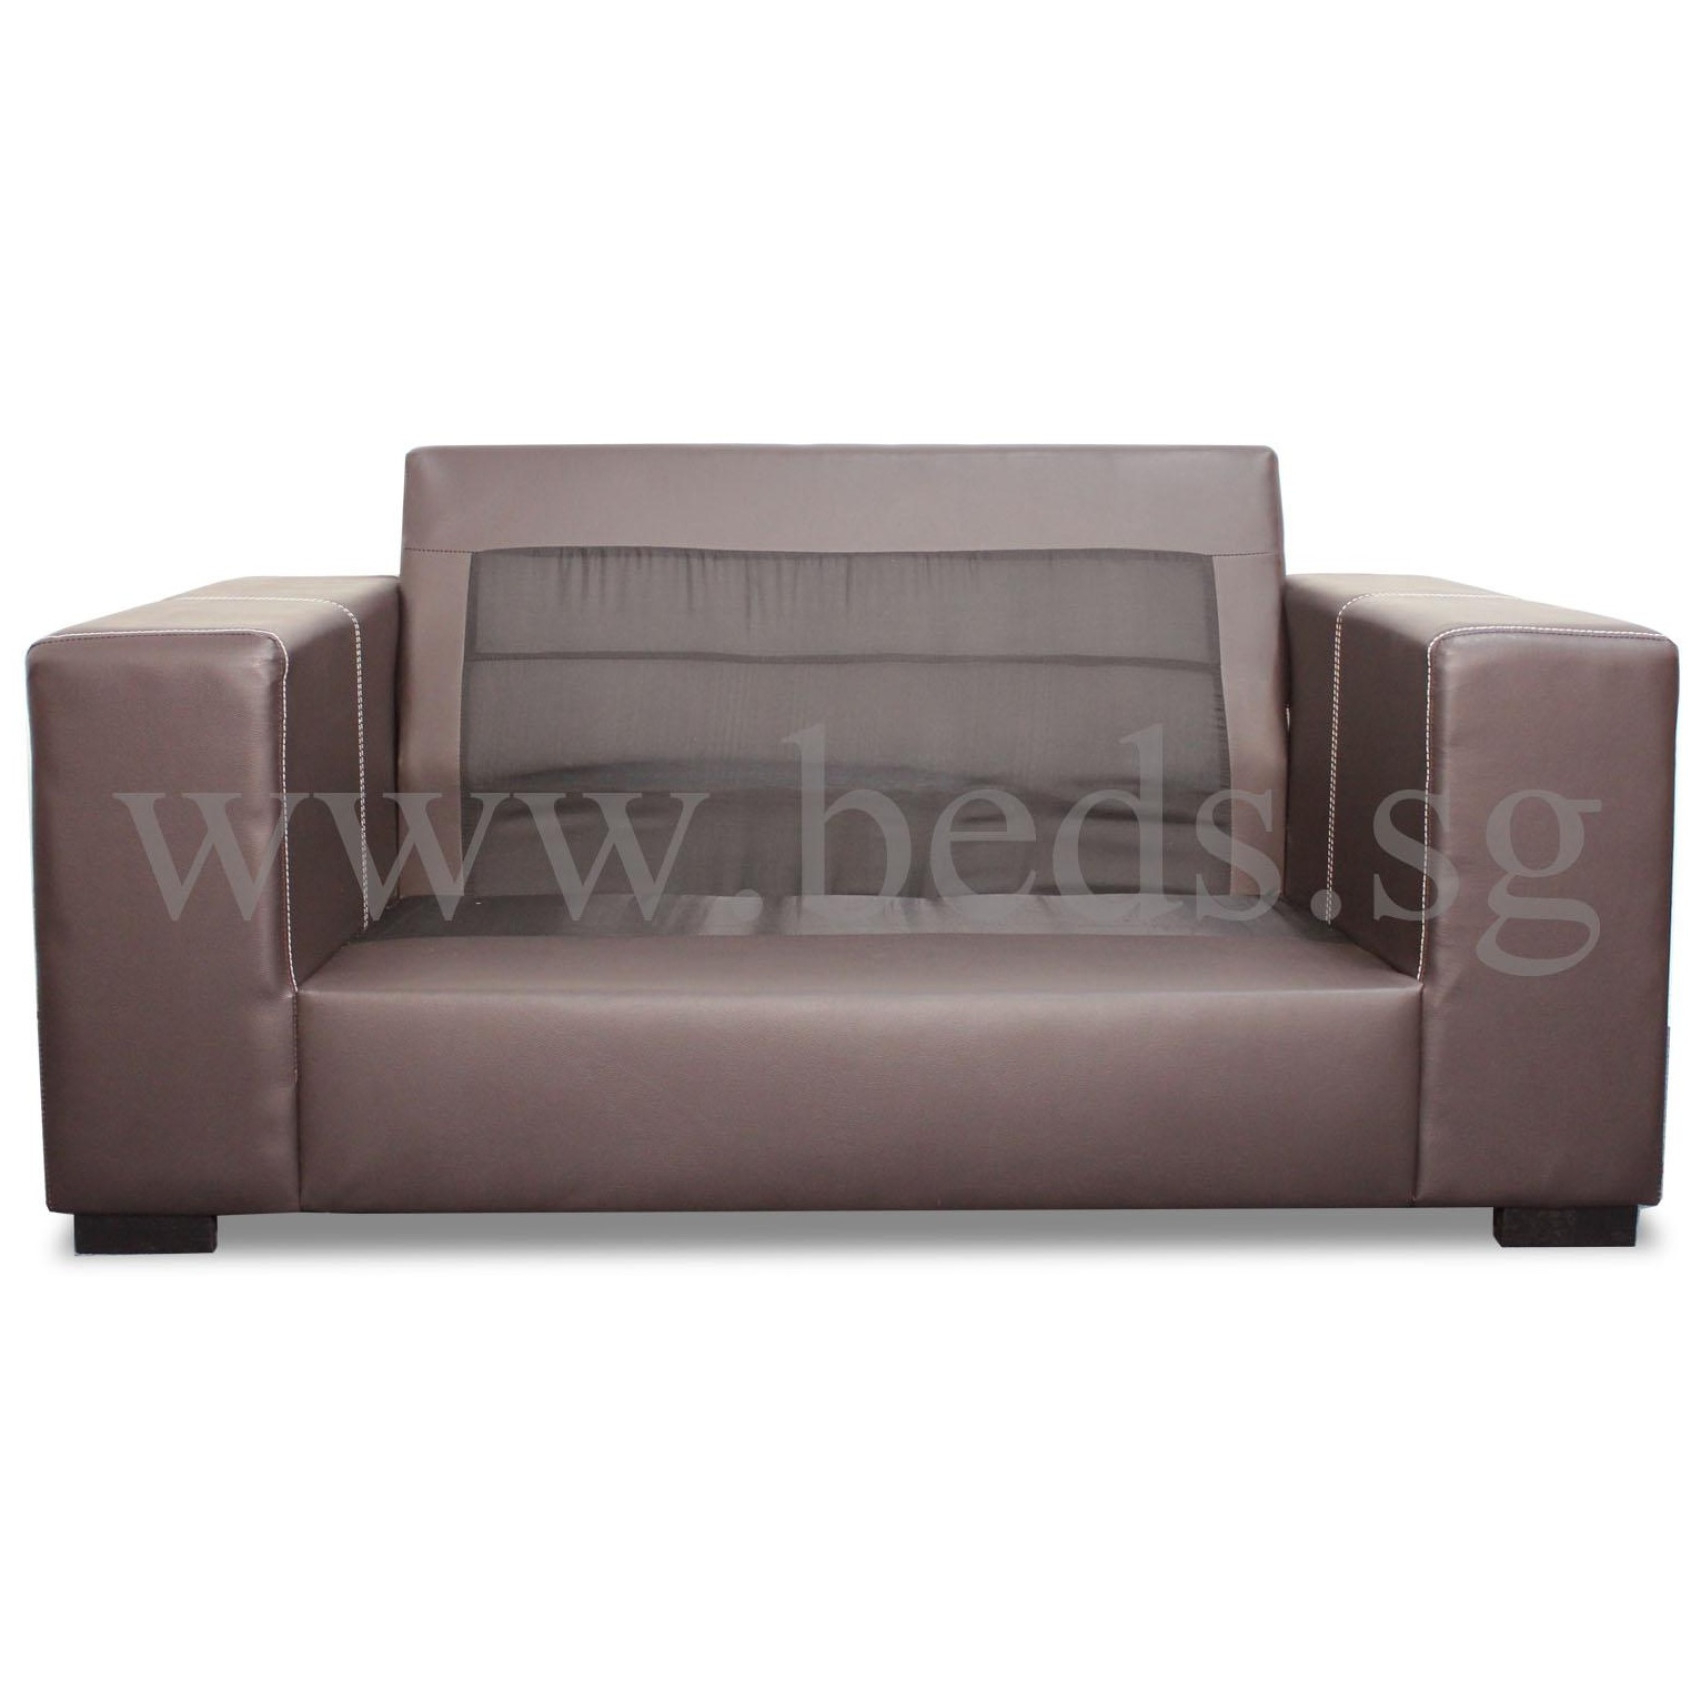 Walter Sofa | Furniture & Home Décor | Fortytwo Intended For Walter Leather Sofa Chairs (View 15 of 25)